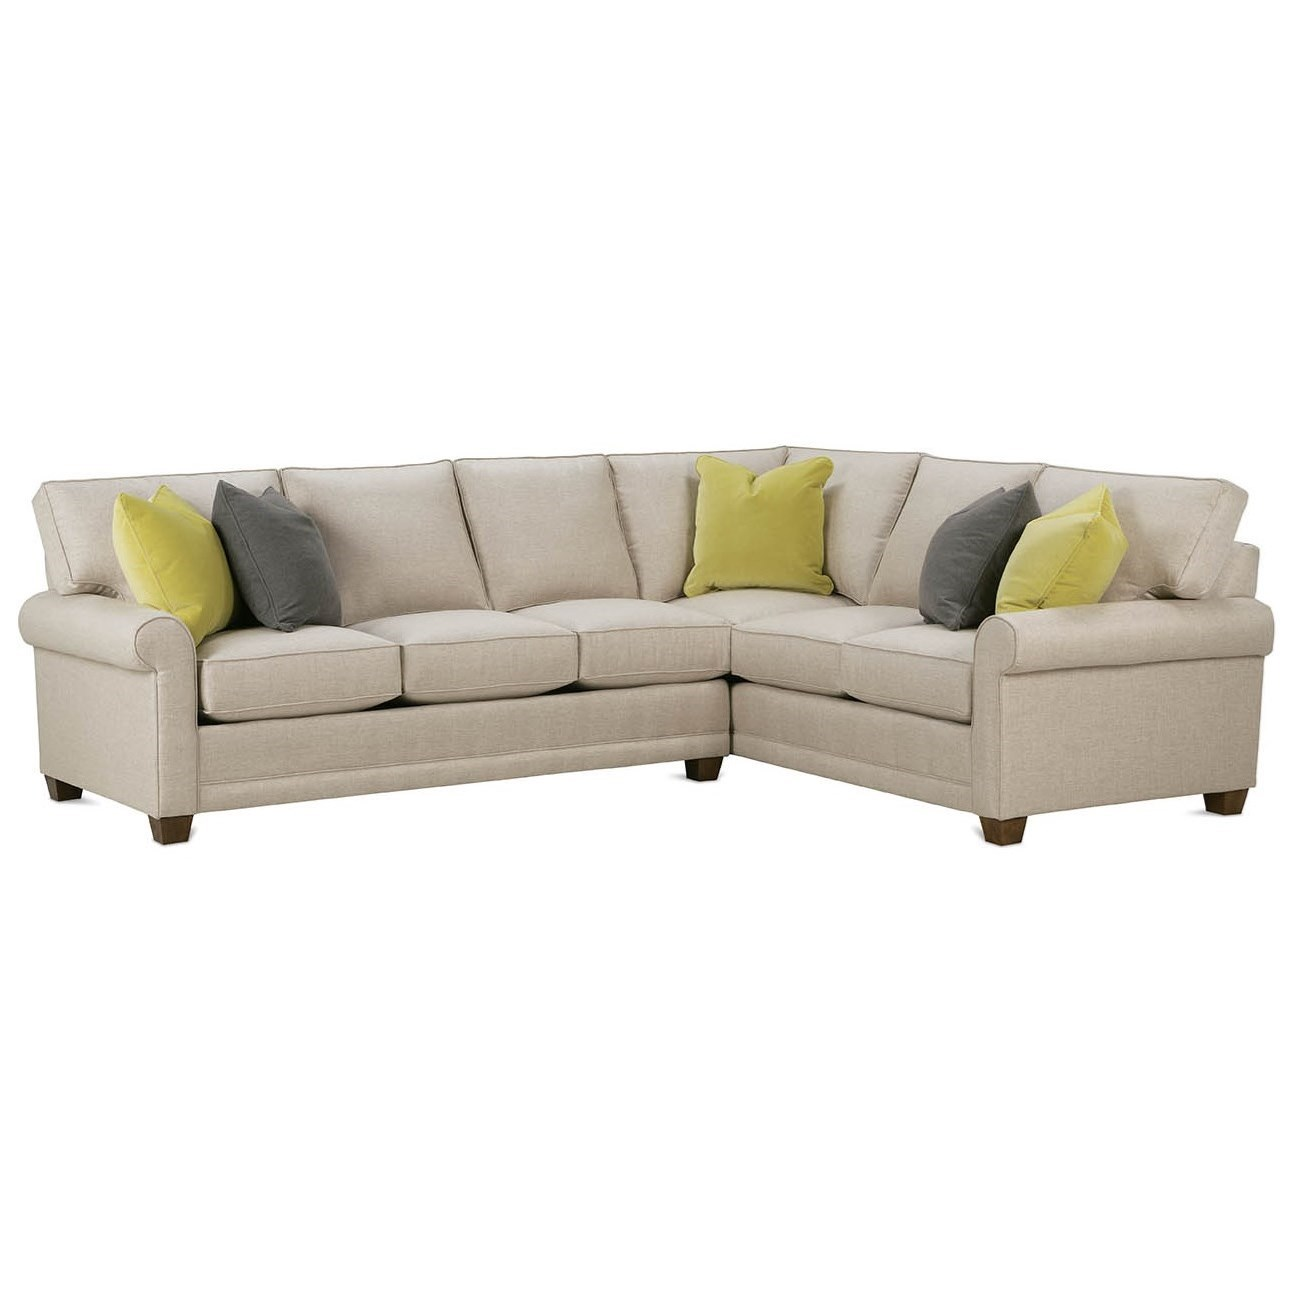 Rowe My Style I Customizable Sectional Sofa With Rolled